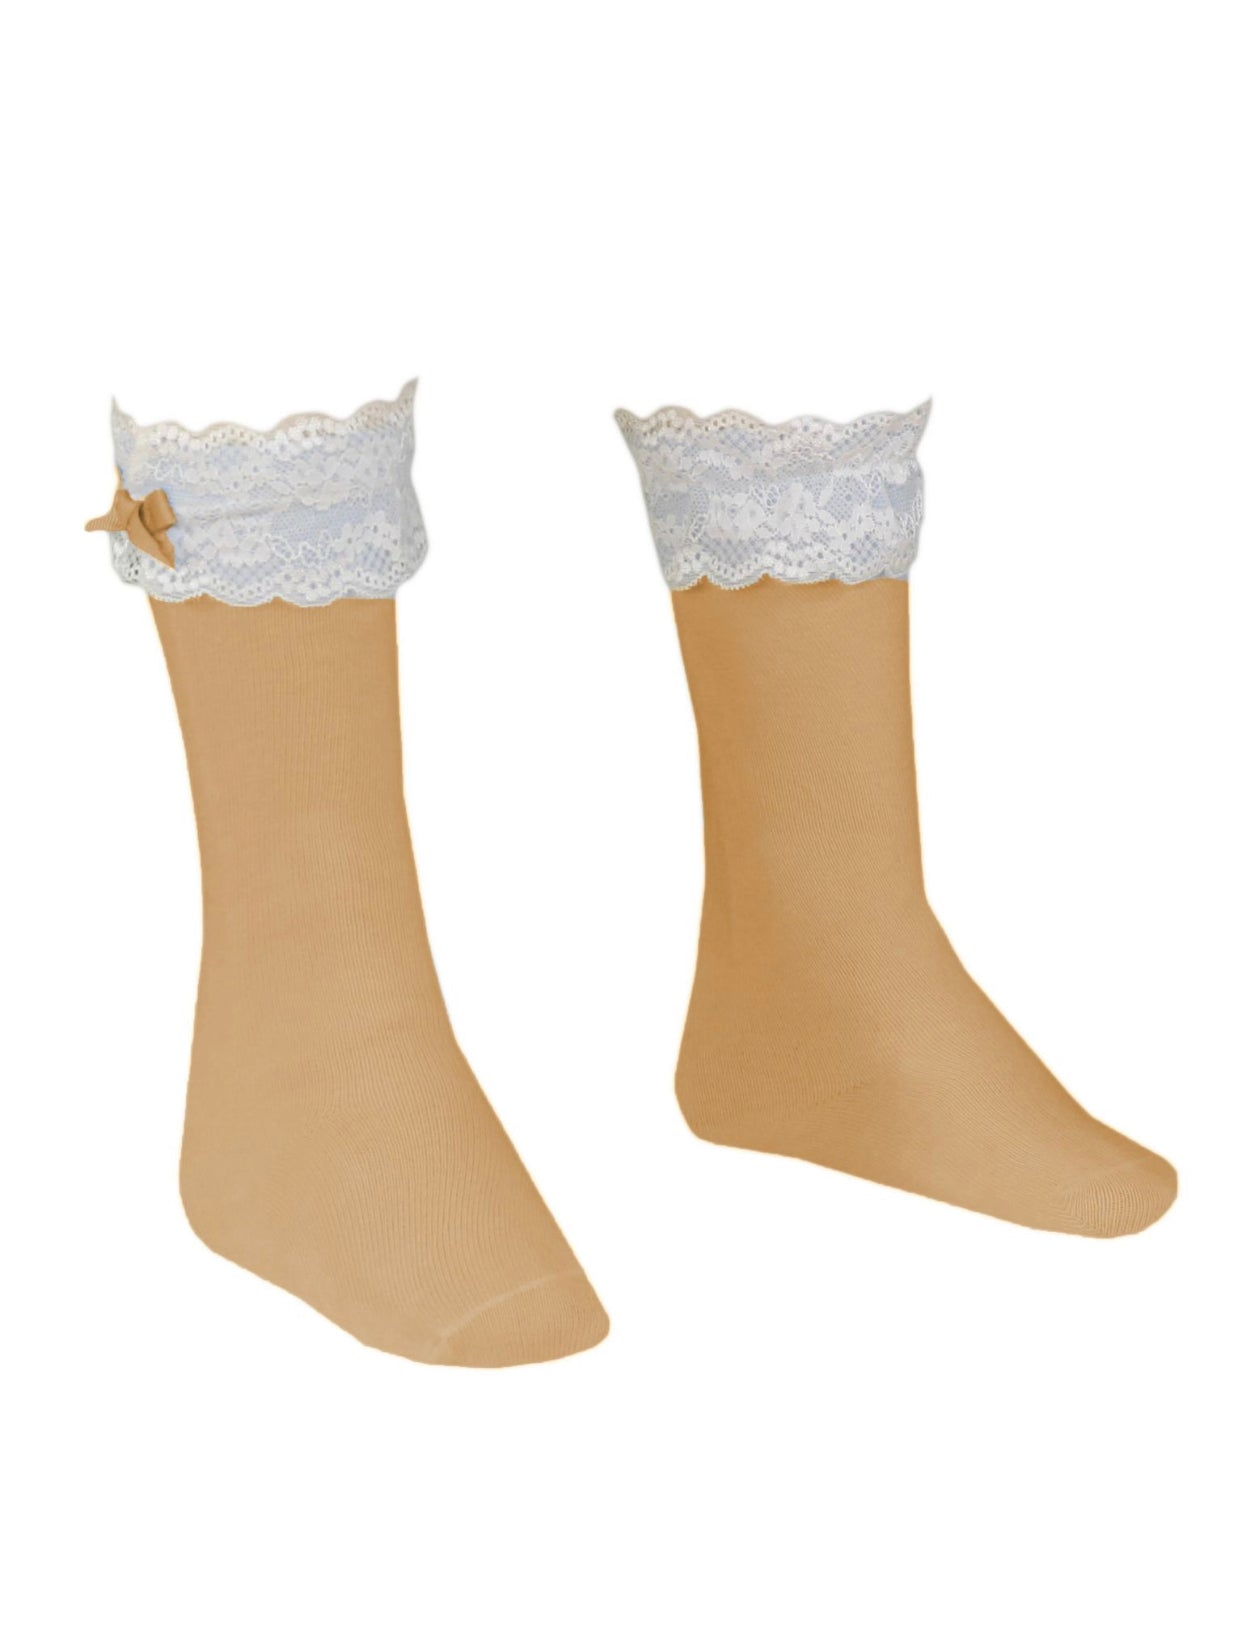 MIRANDA Camel Knee high socks with frilly details